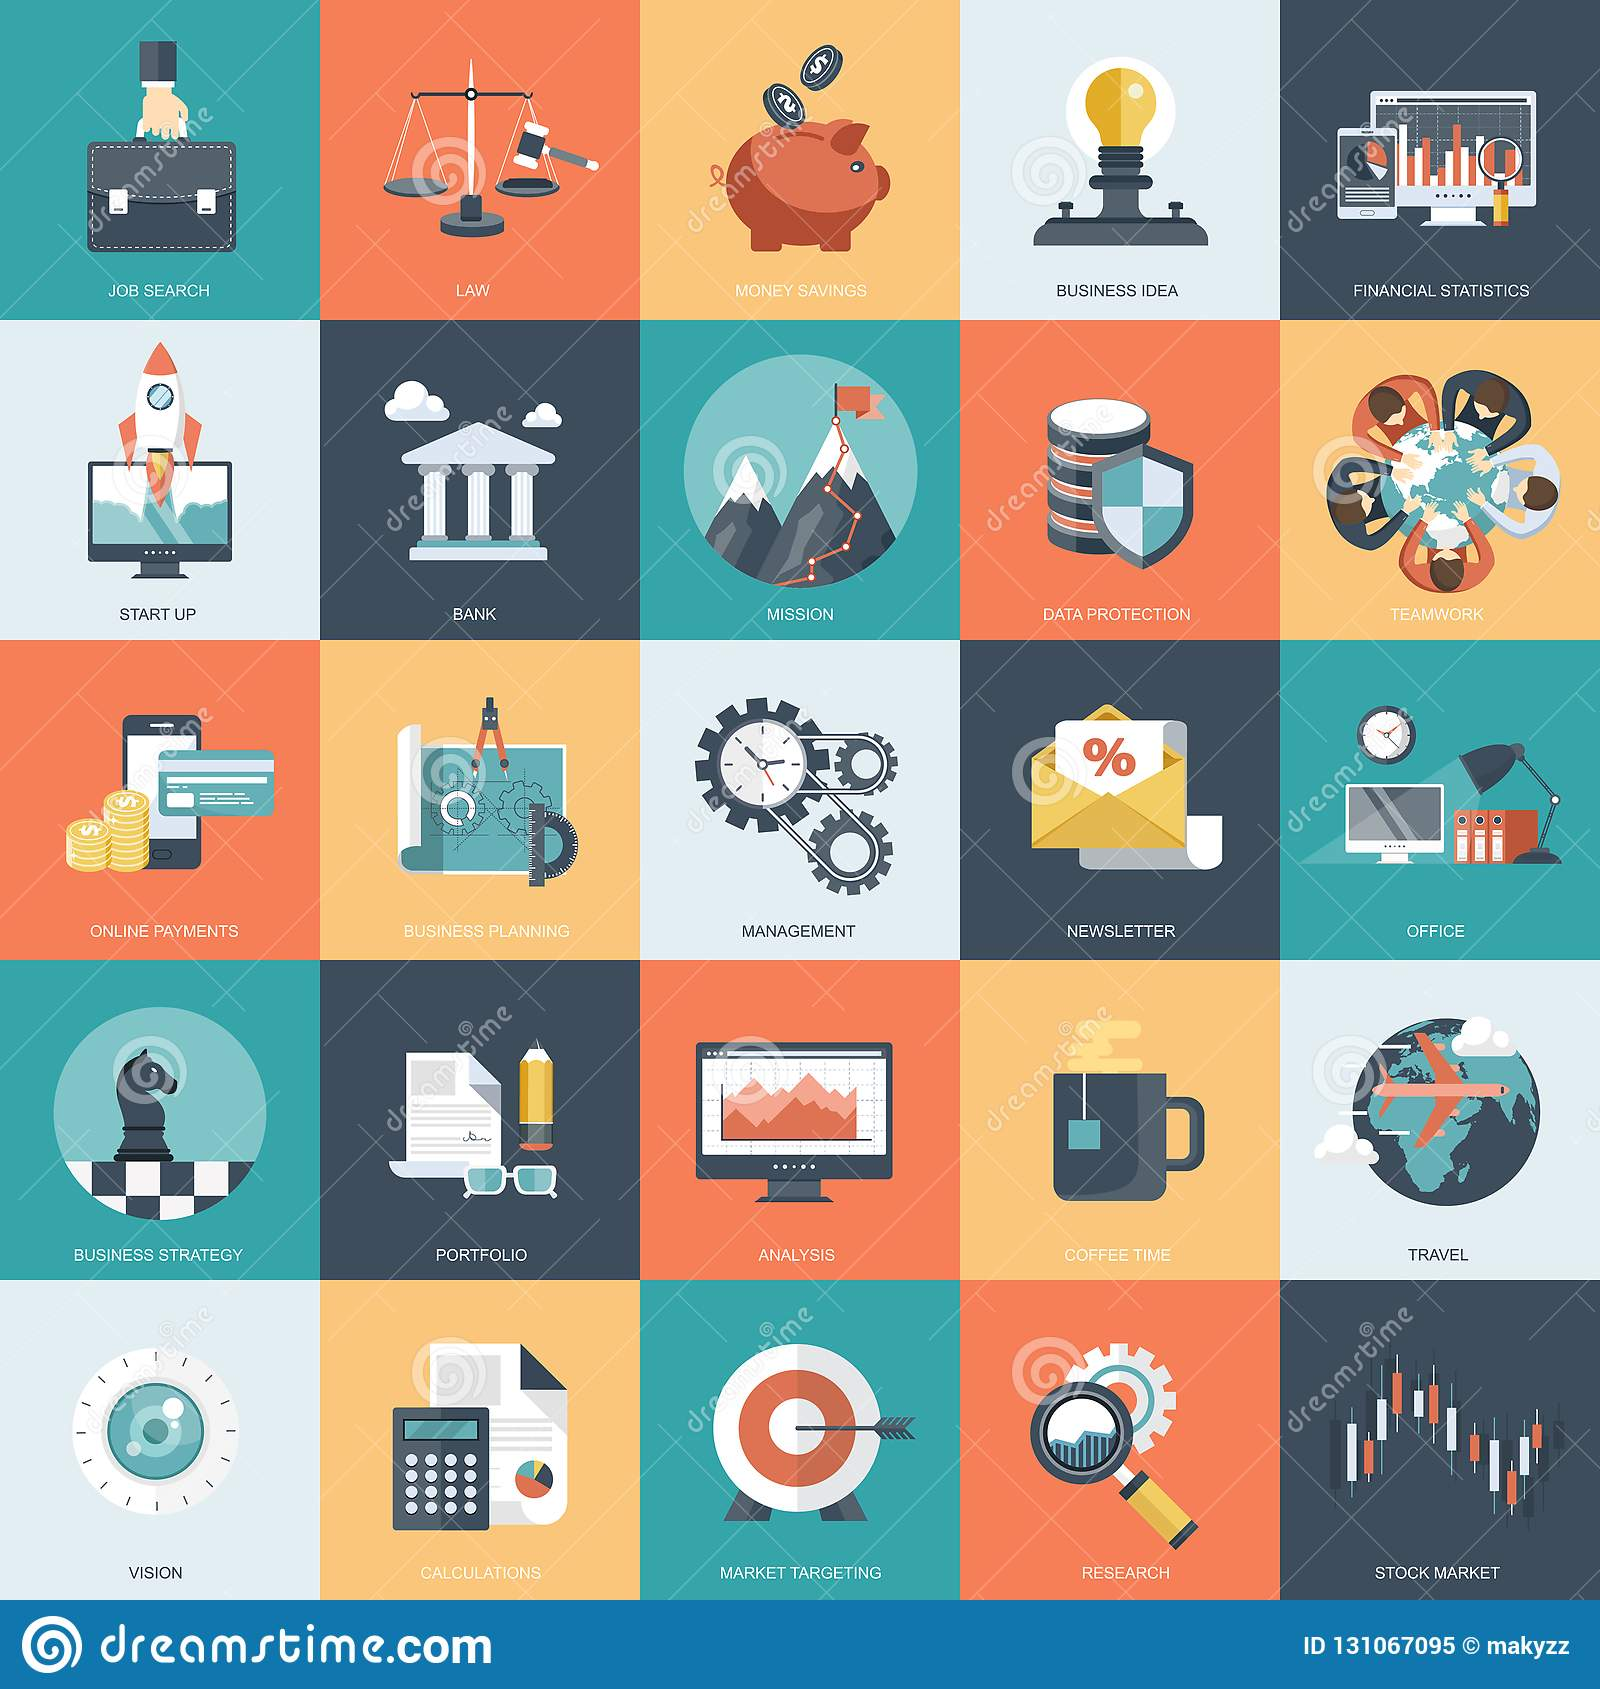 Colorful icon set for business, management, technology and finances. Flat objects for websites and mobile apps